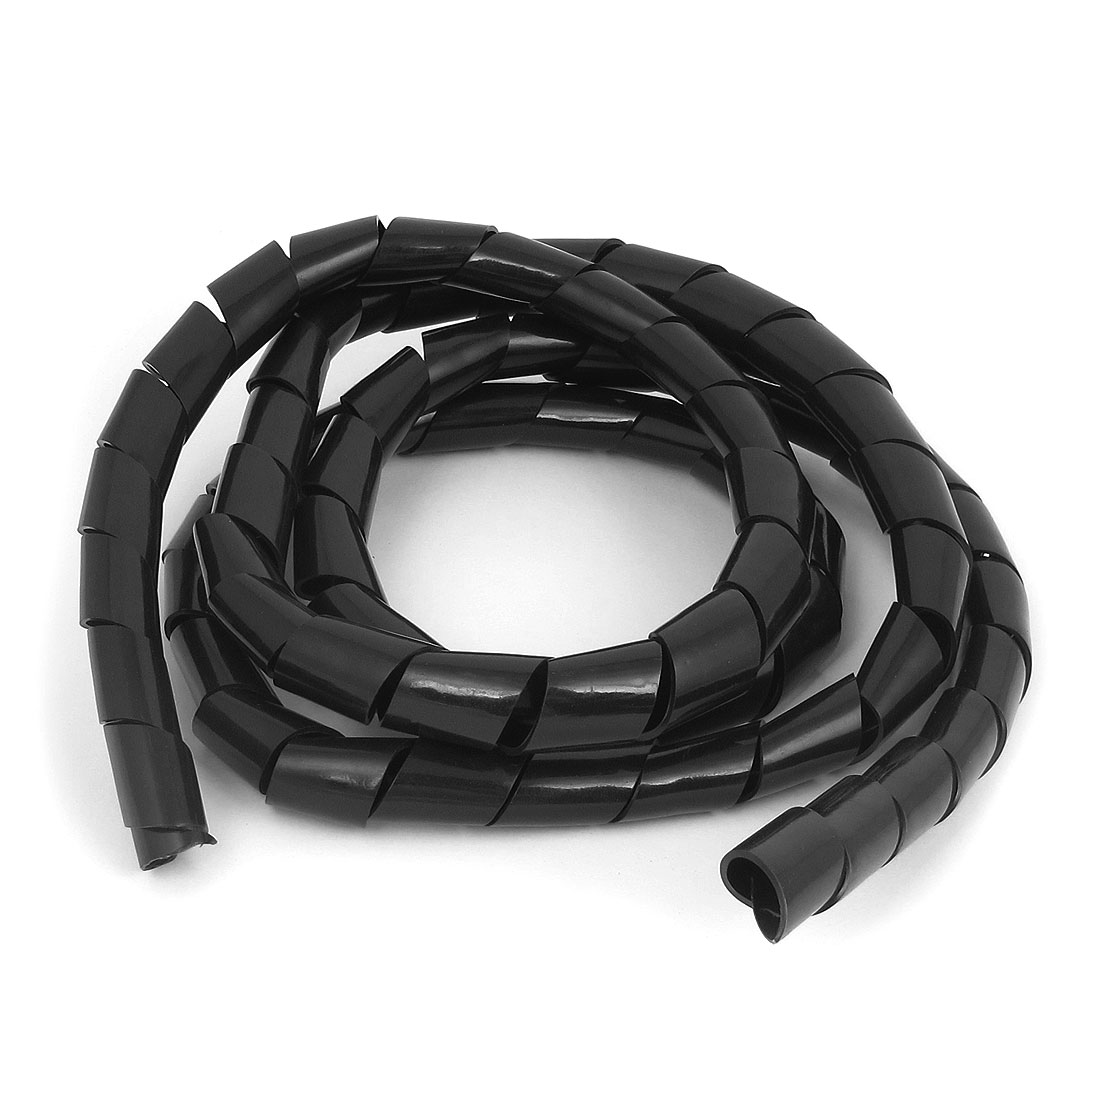 236cm Long 16mm Inner Dia Flexible Spiral Tube Wrapping Band Wrap Cable Wire Organizer Management Black